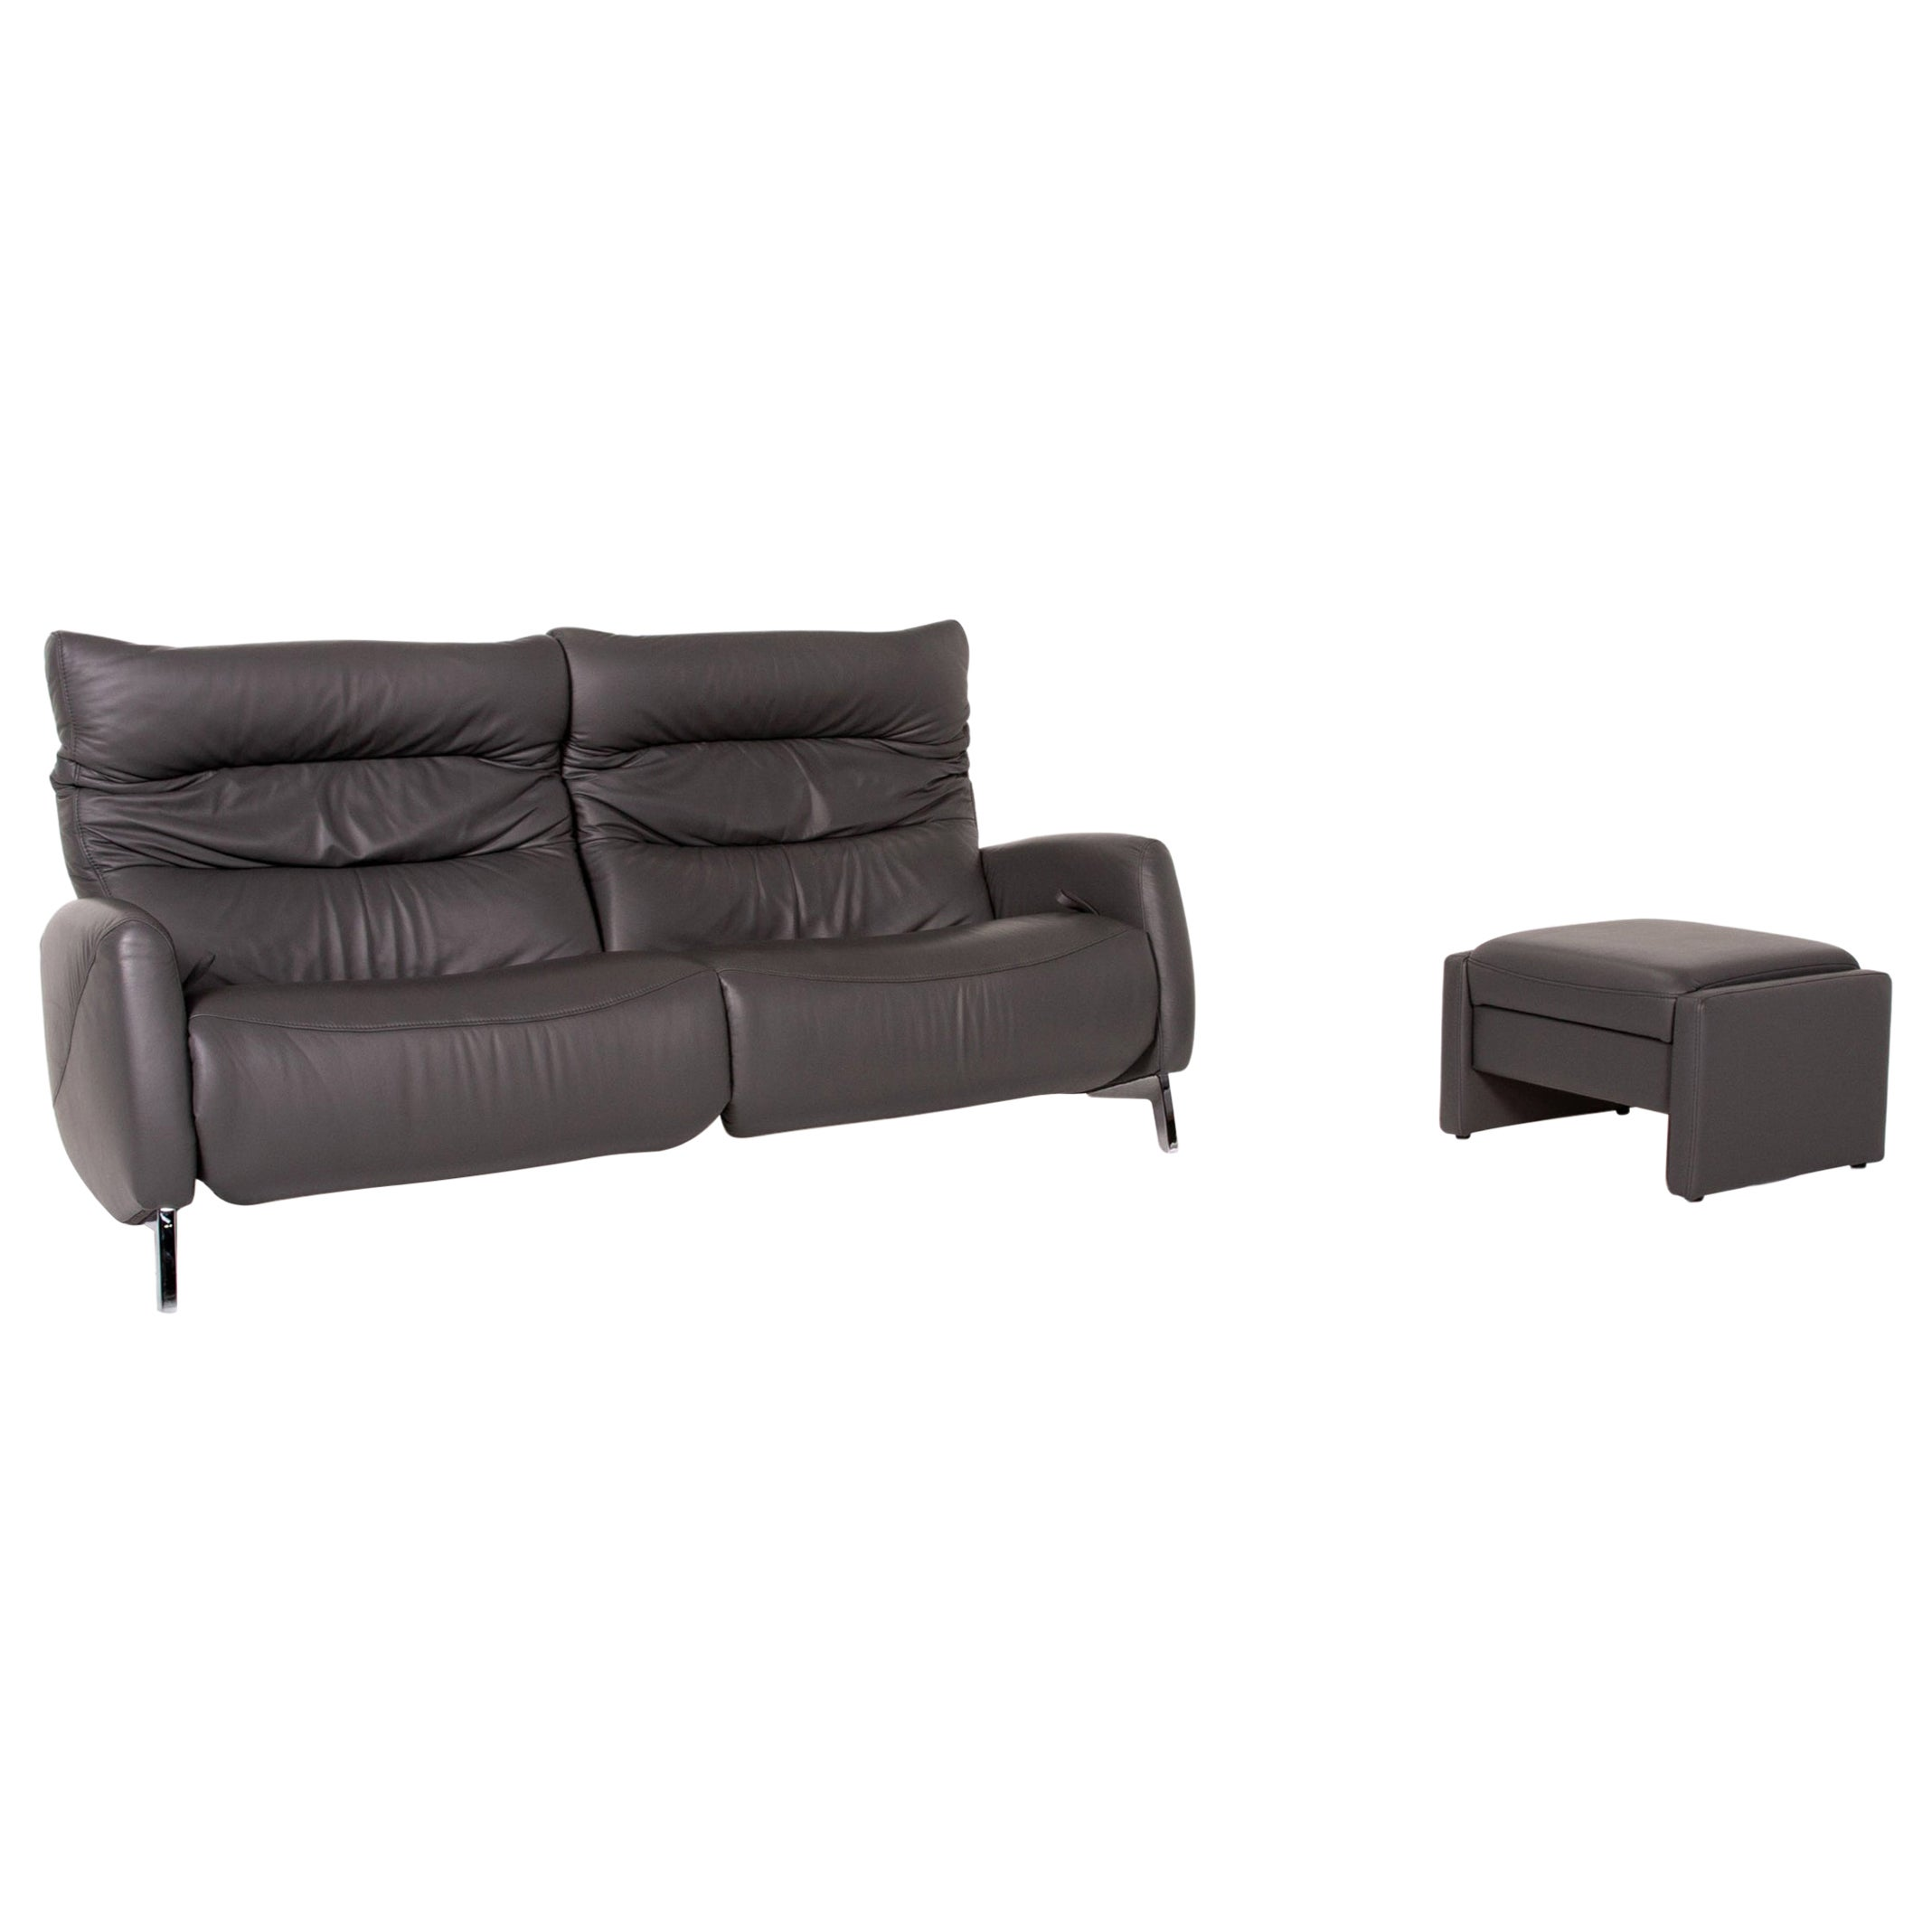 Mondo Recero Leather Sofa Gray Two-Seat Function Relax Function Couch